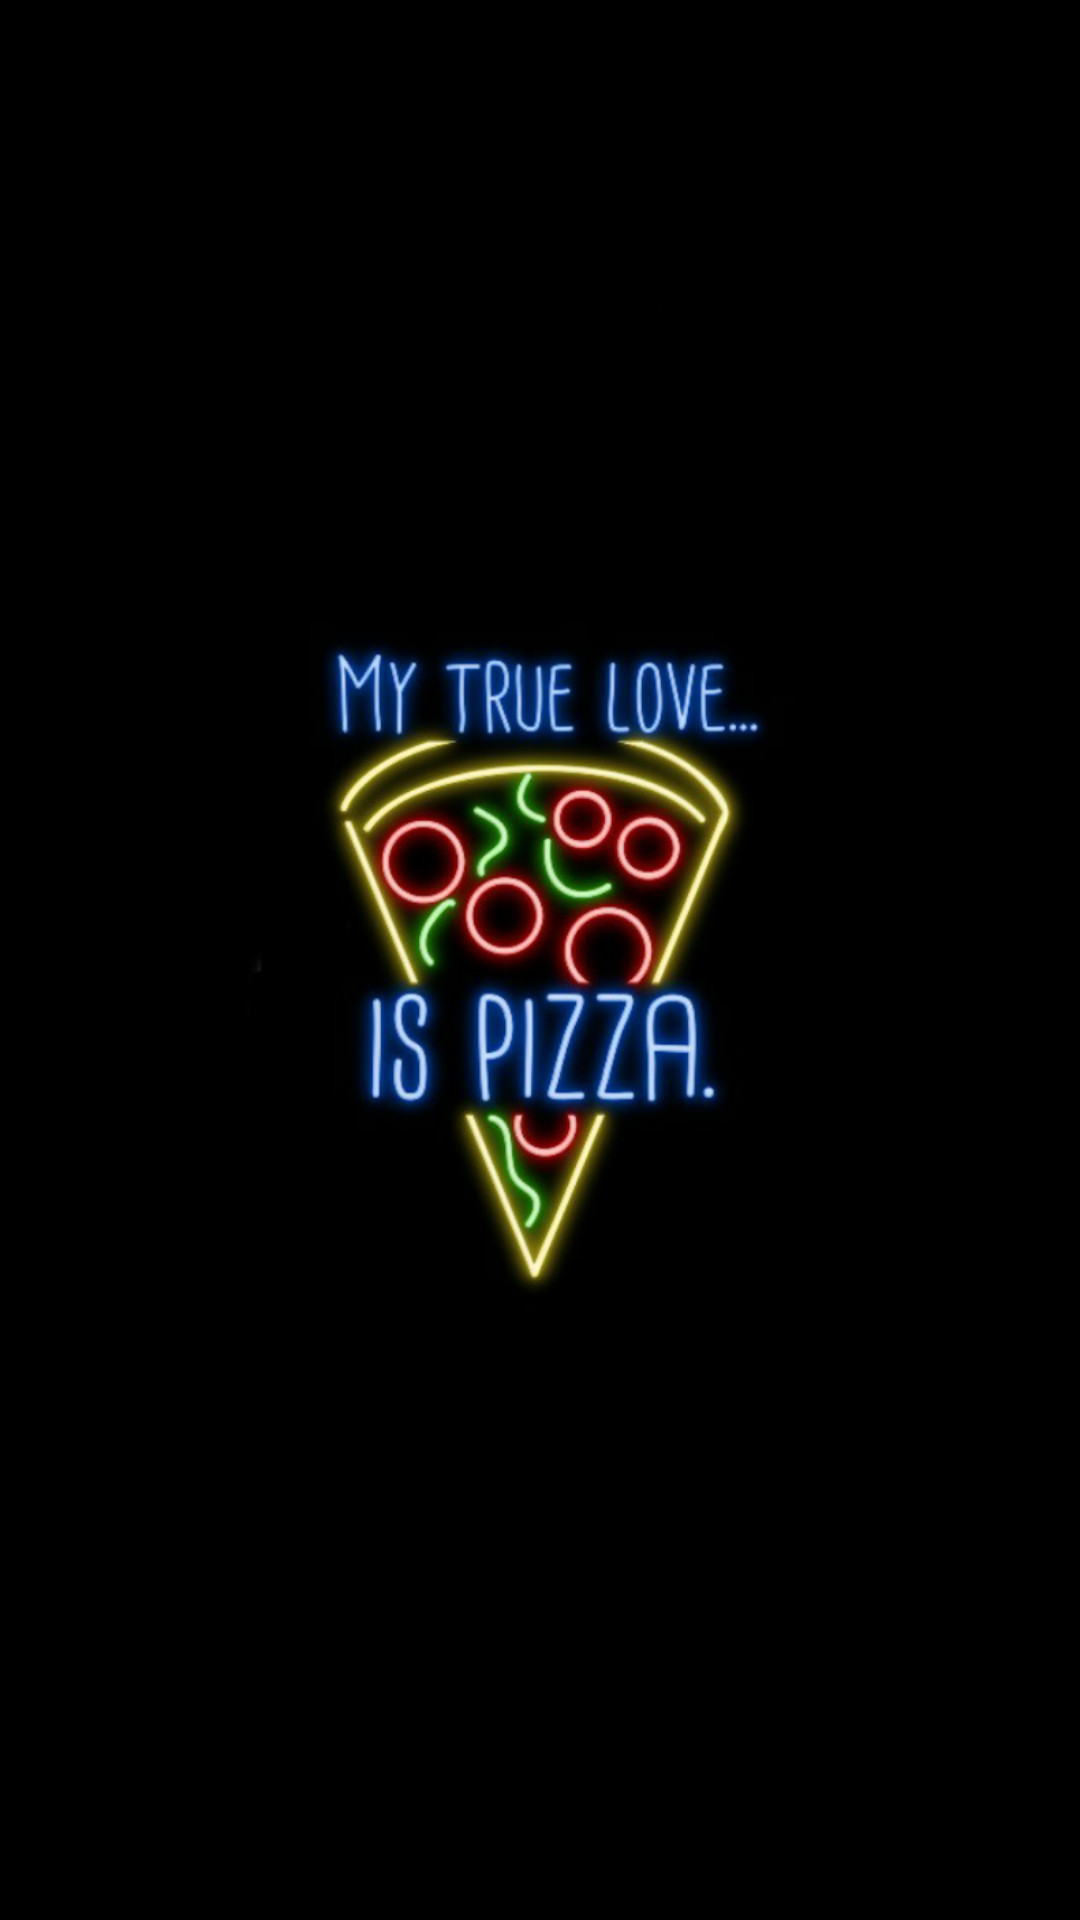 1080x1920 pizza wallpaper